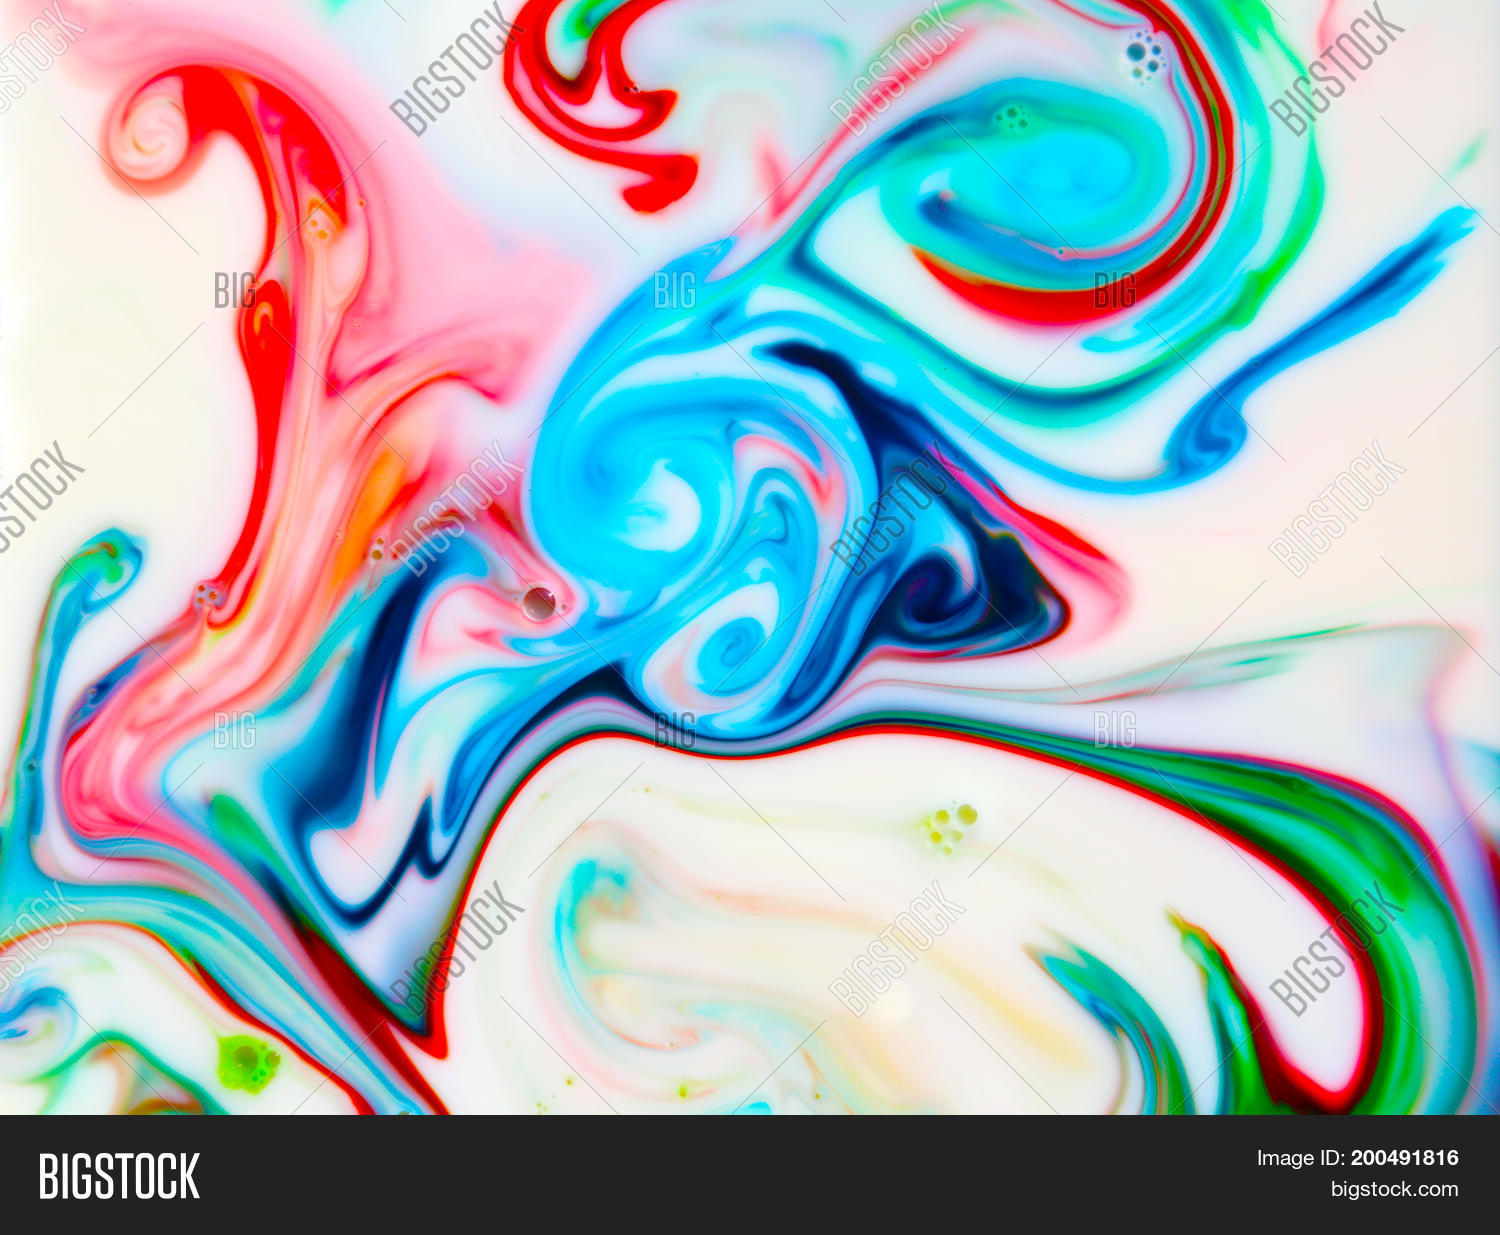 Abstract Colorful Backgrounds Image & Photo   Bigstock